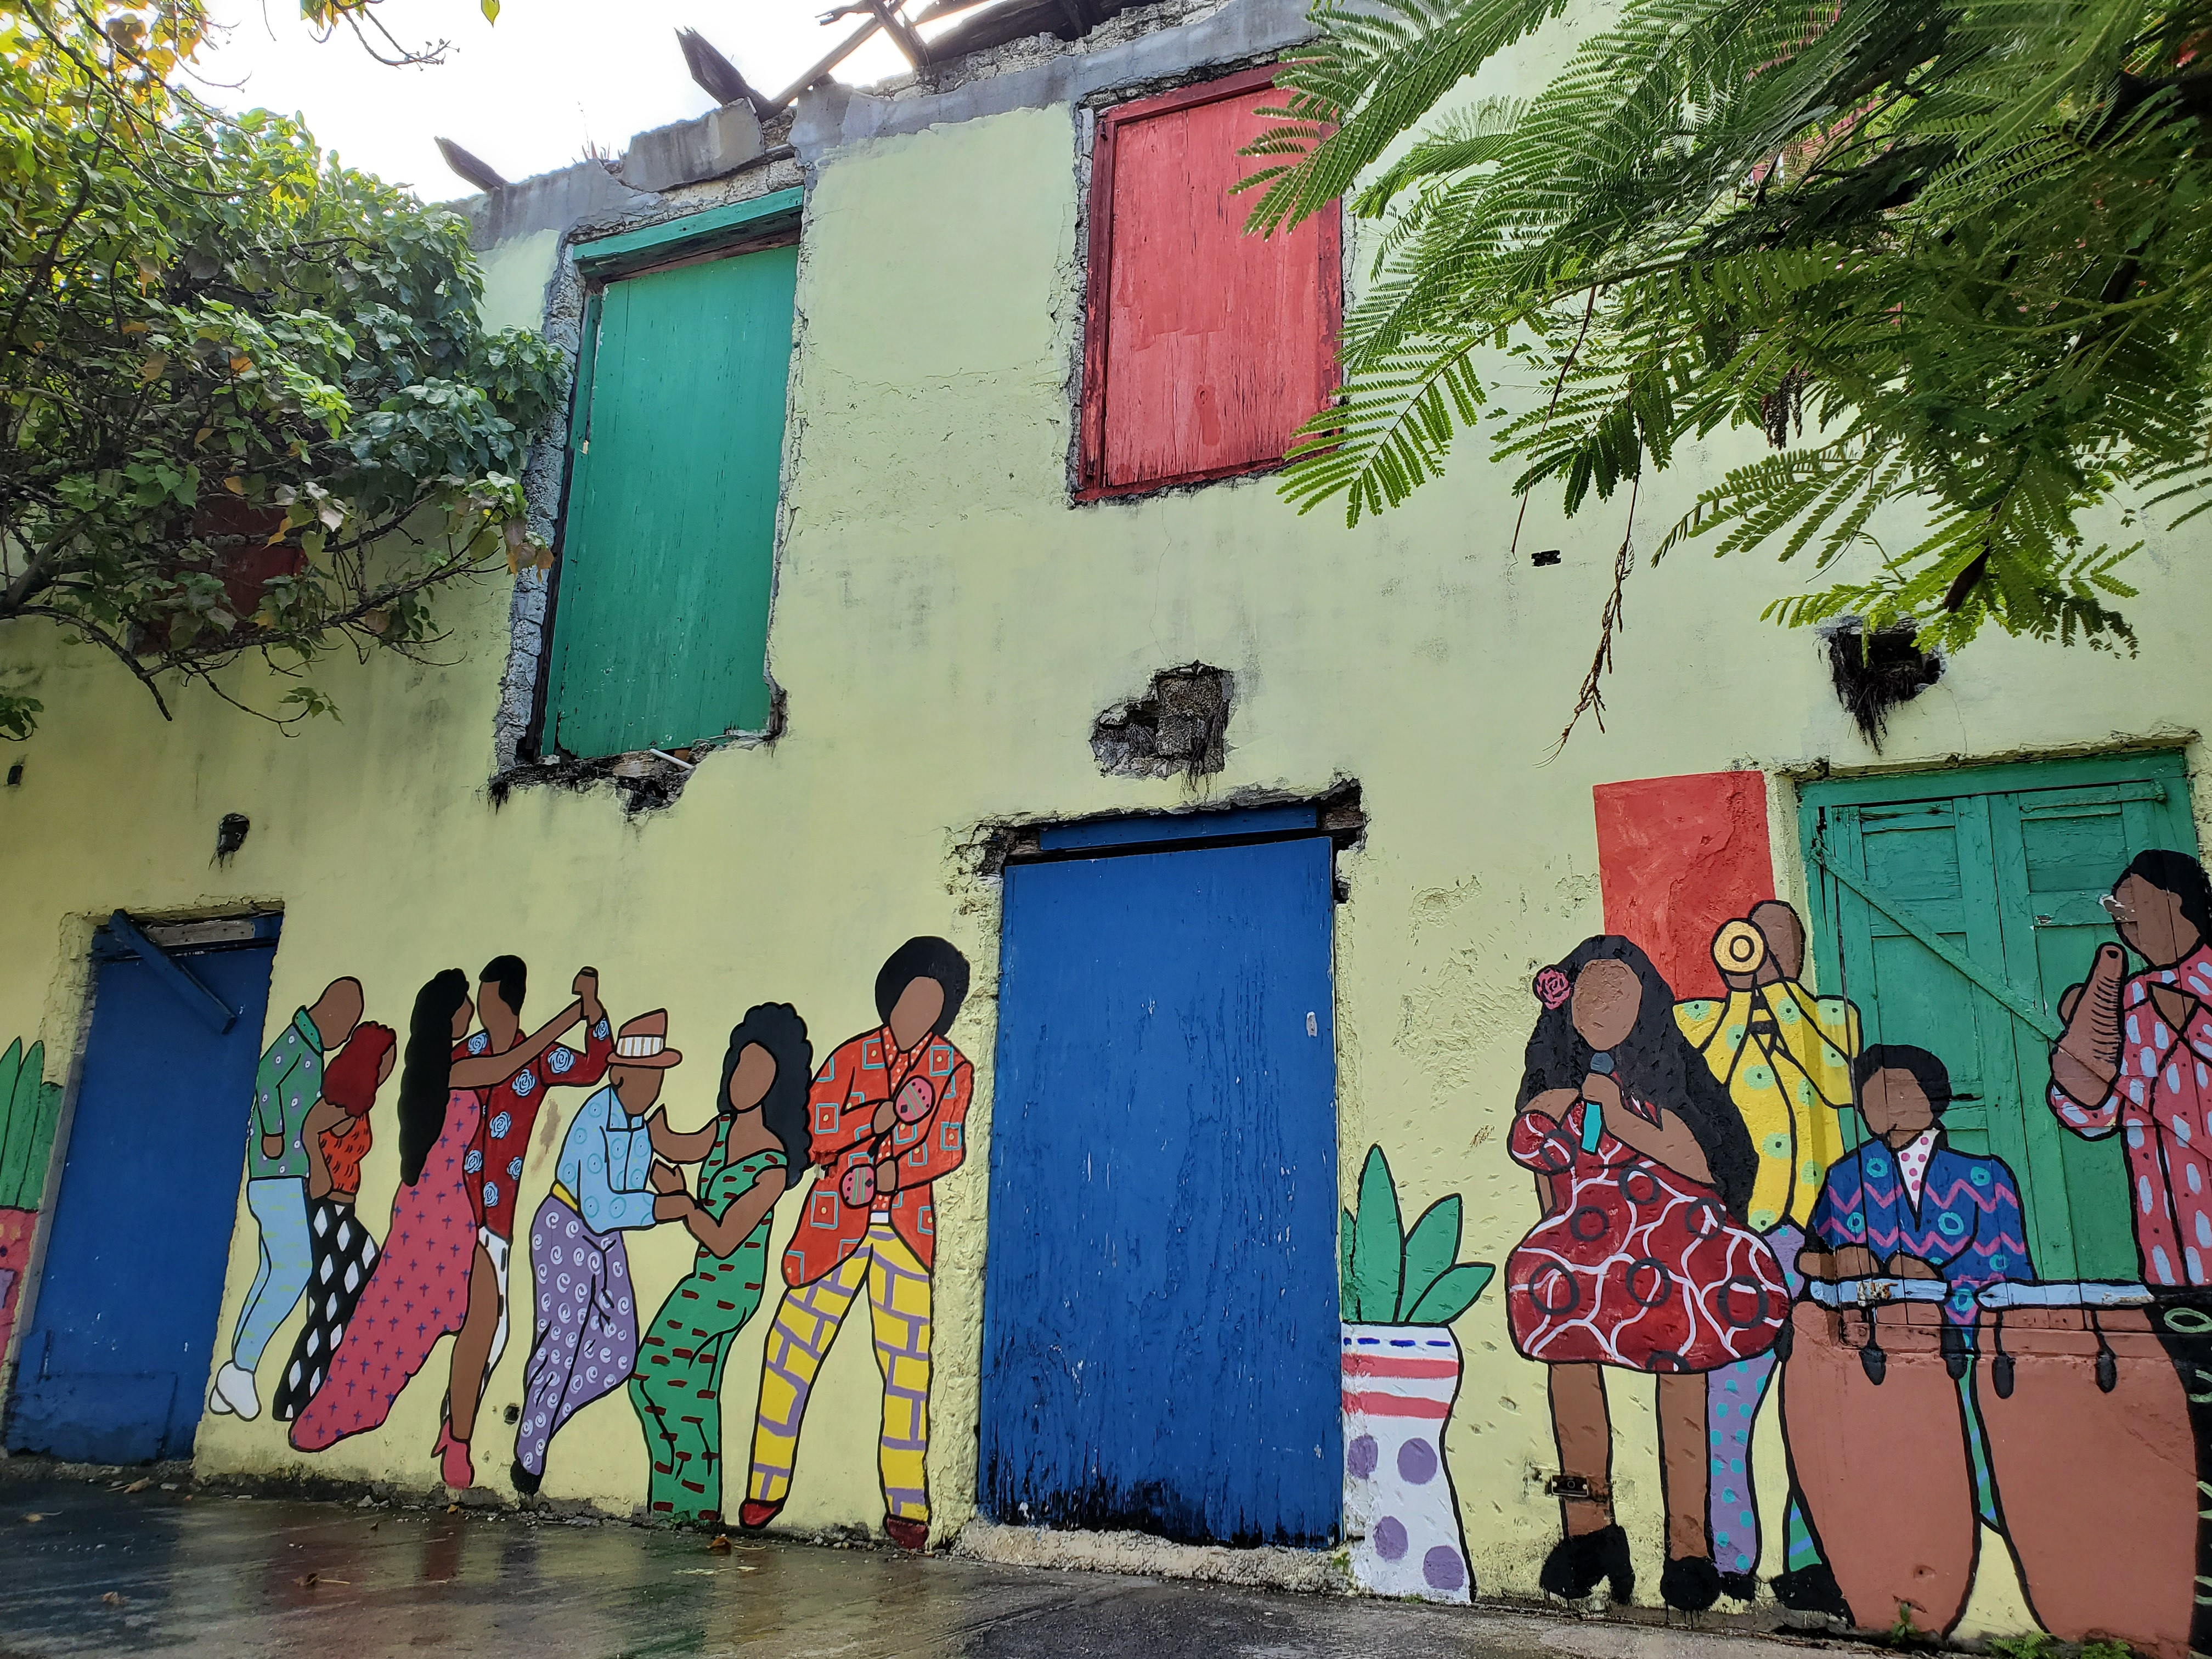 Mural by June Collie